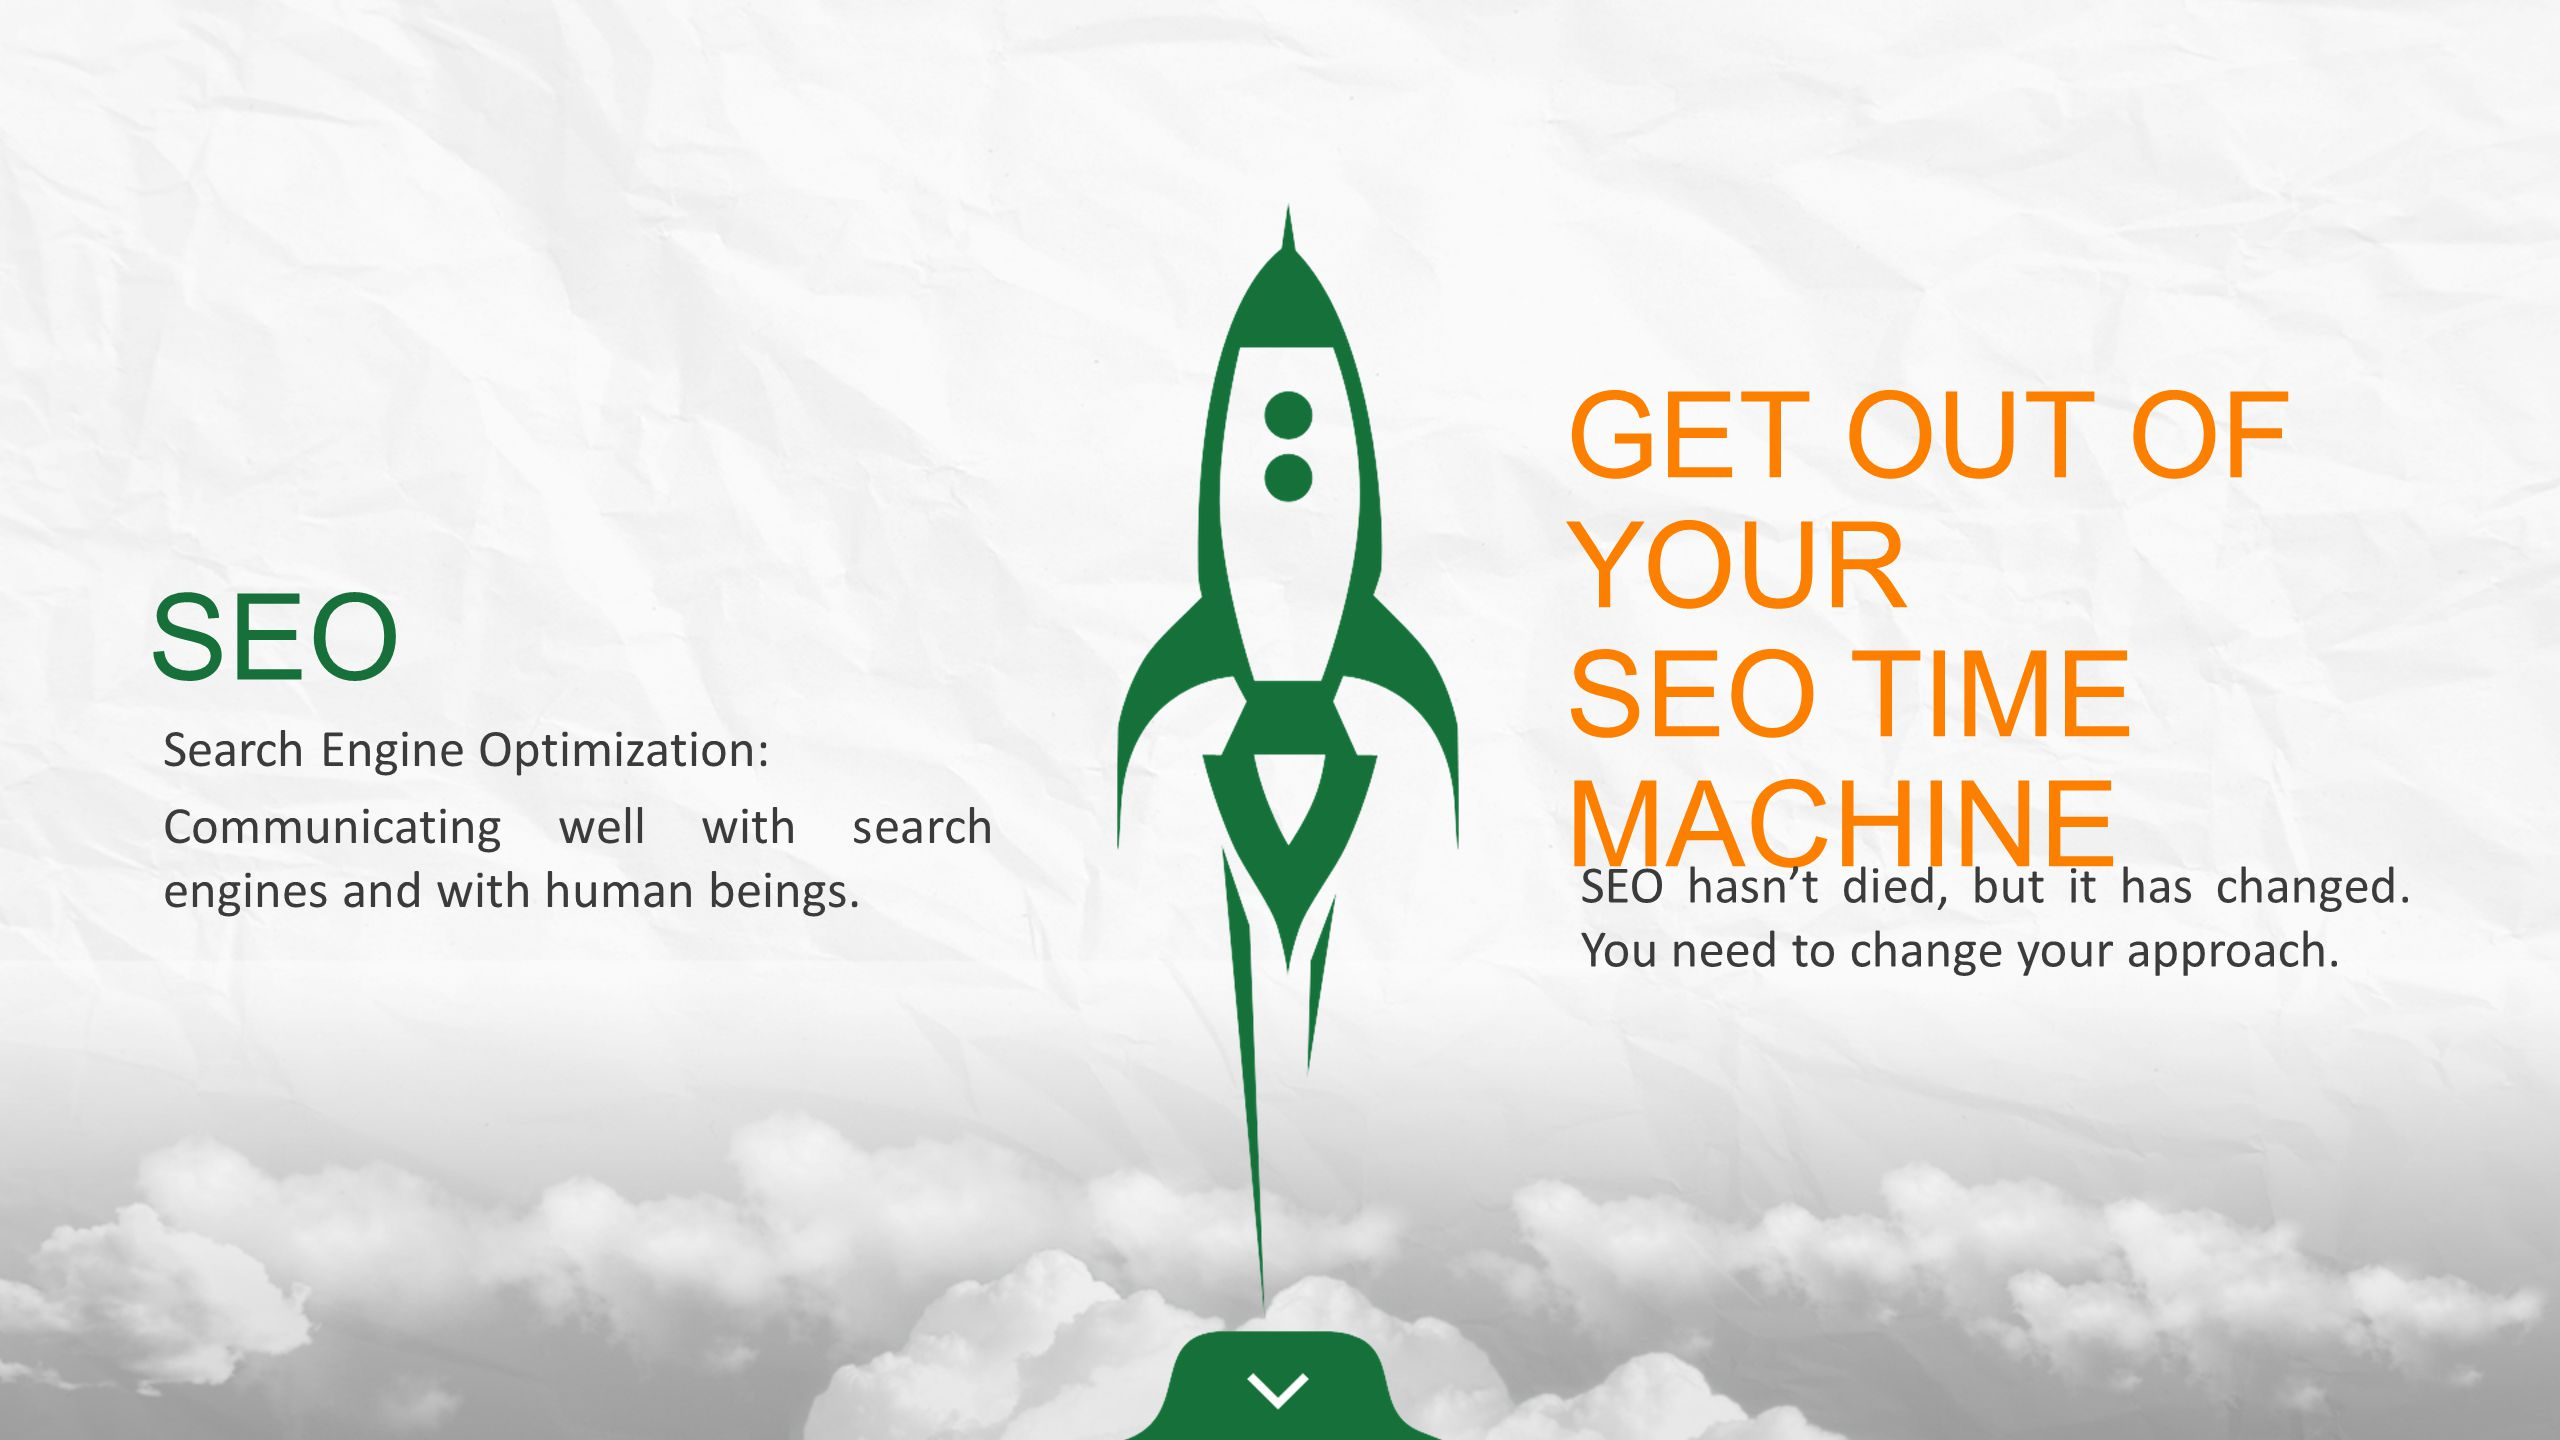 SEO Search Engine Optimization: Communicating well with search engines and with human beings.